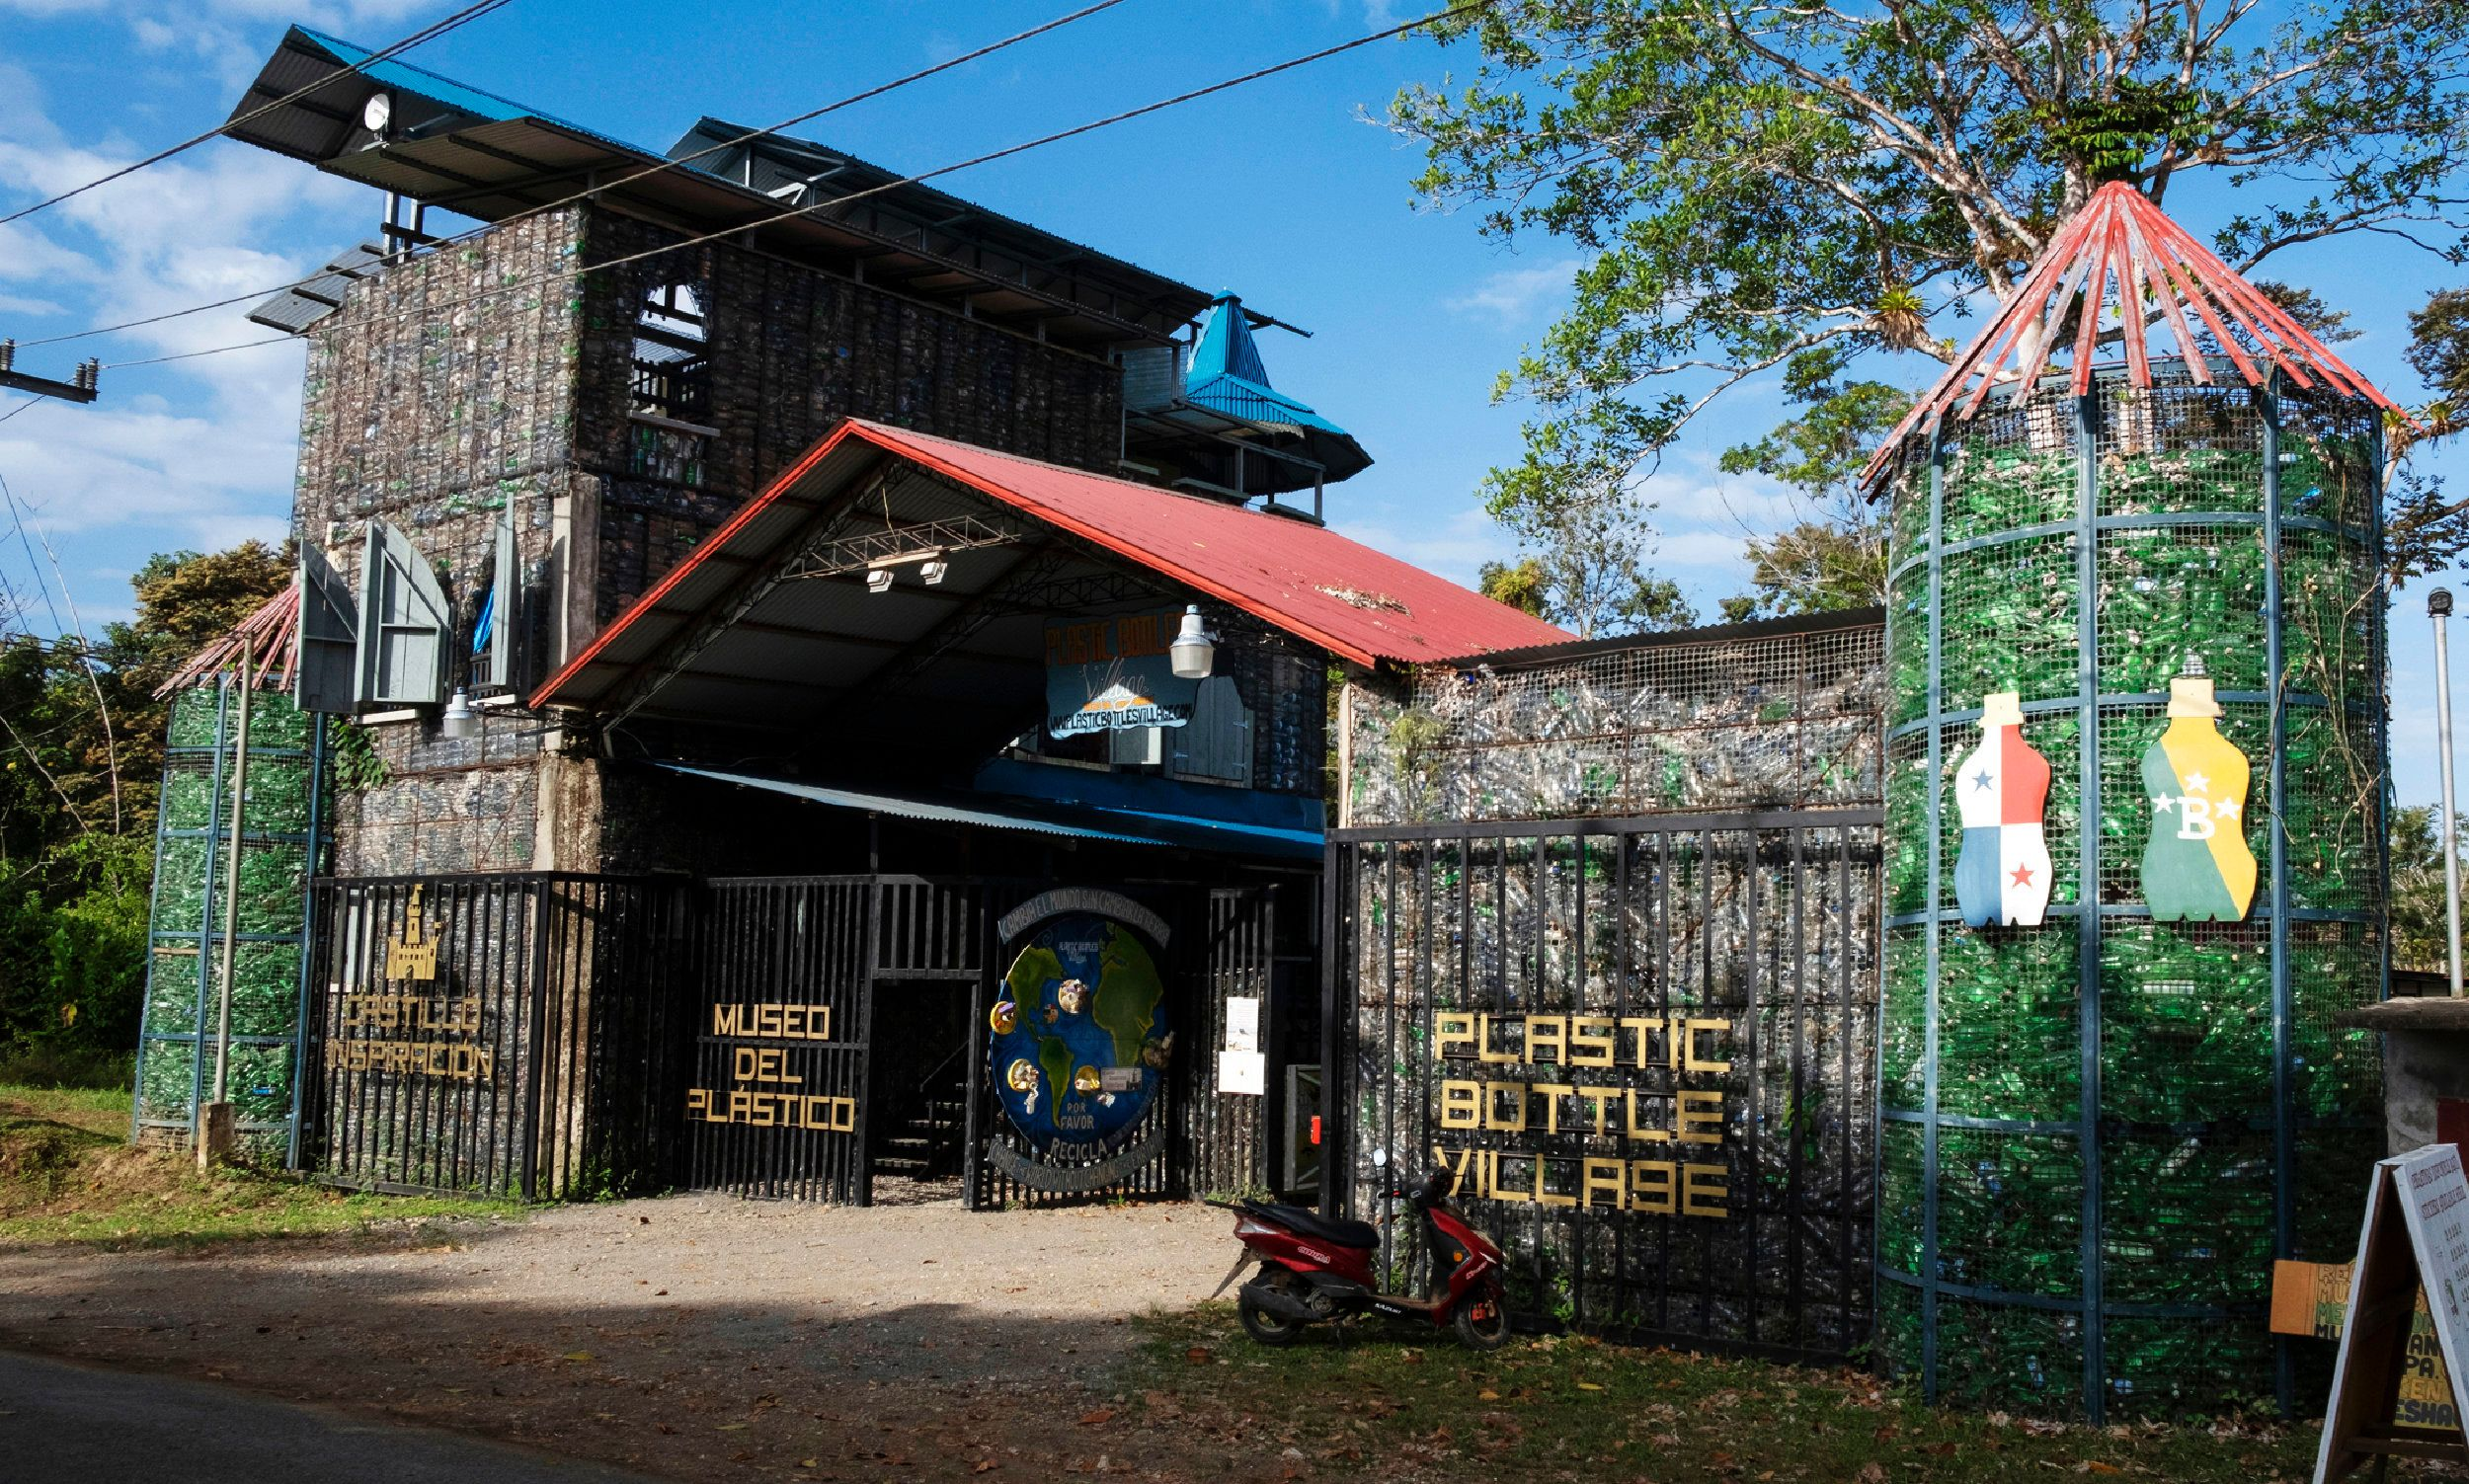 The plastic castle in Isla Colón's Plastic Bottle Village is a four-story building owned and directed by Canadian